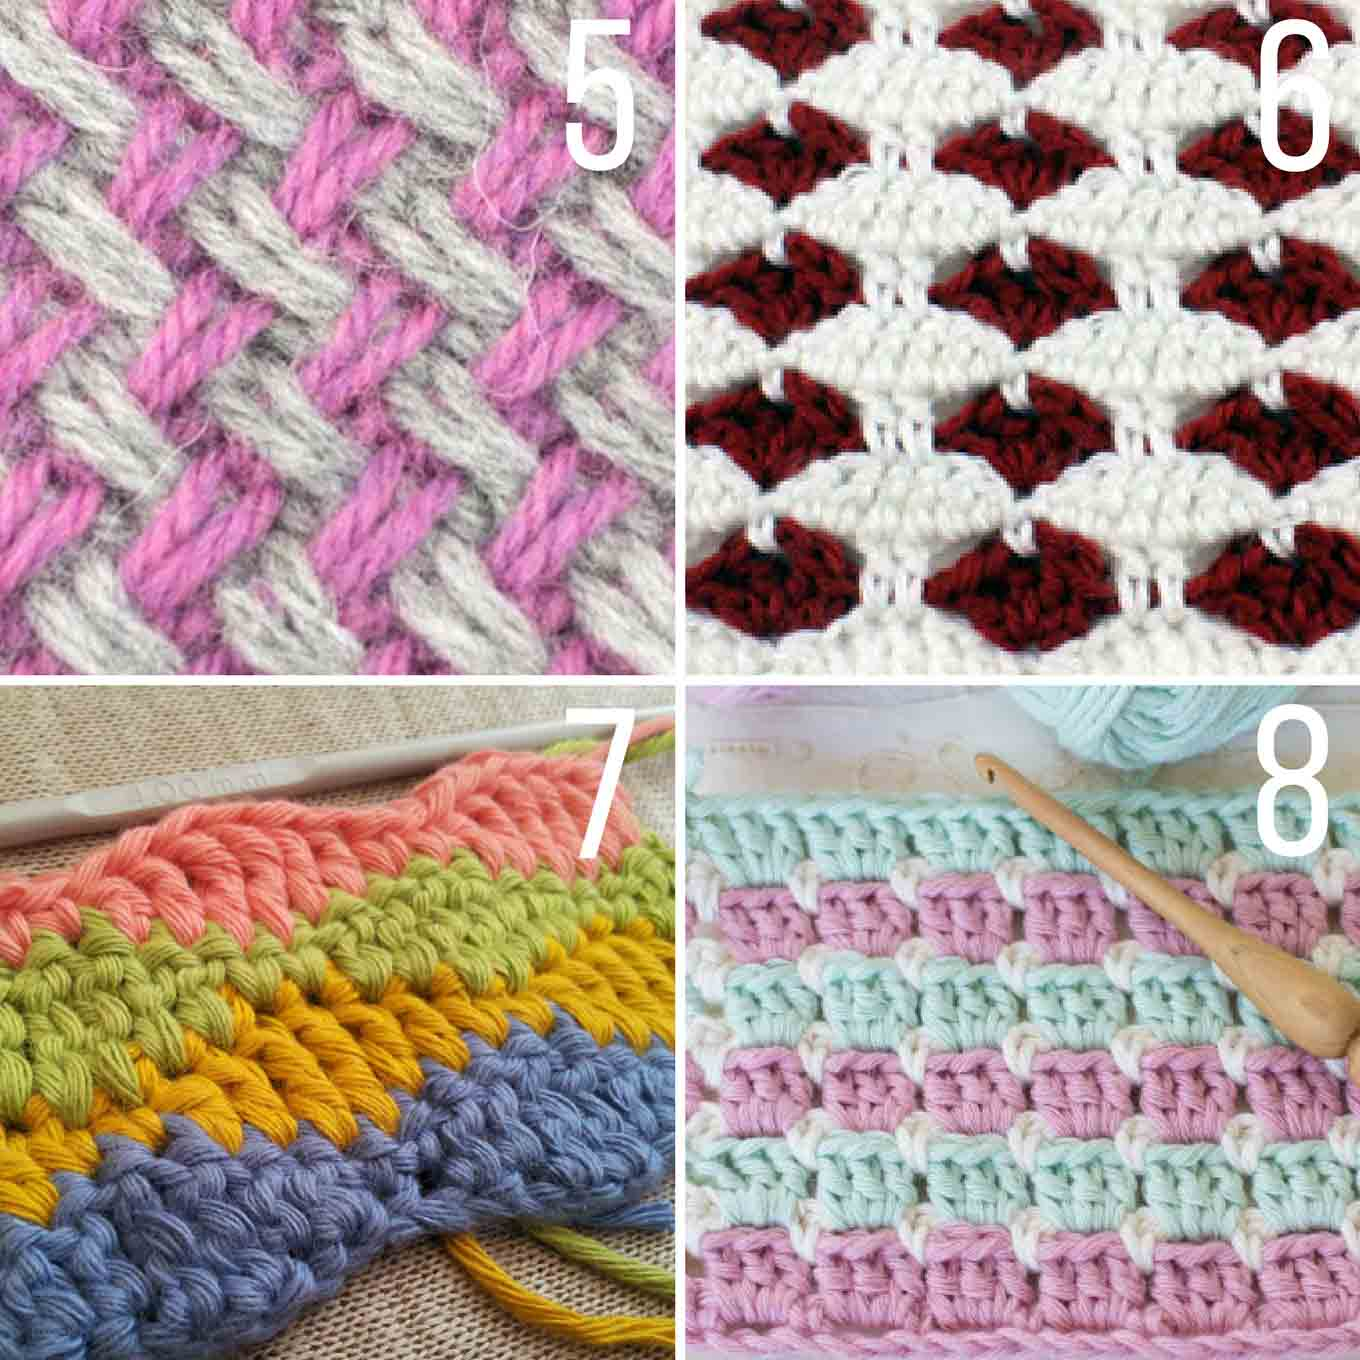 Crochet Multiple Colors : Two Color Plaited Basketweave by New Stitch a Day